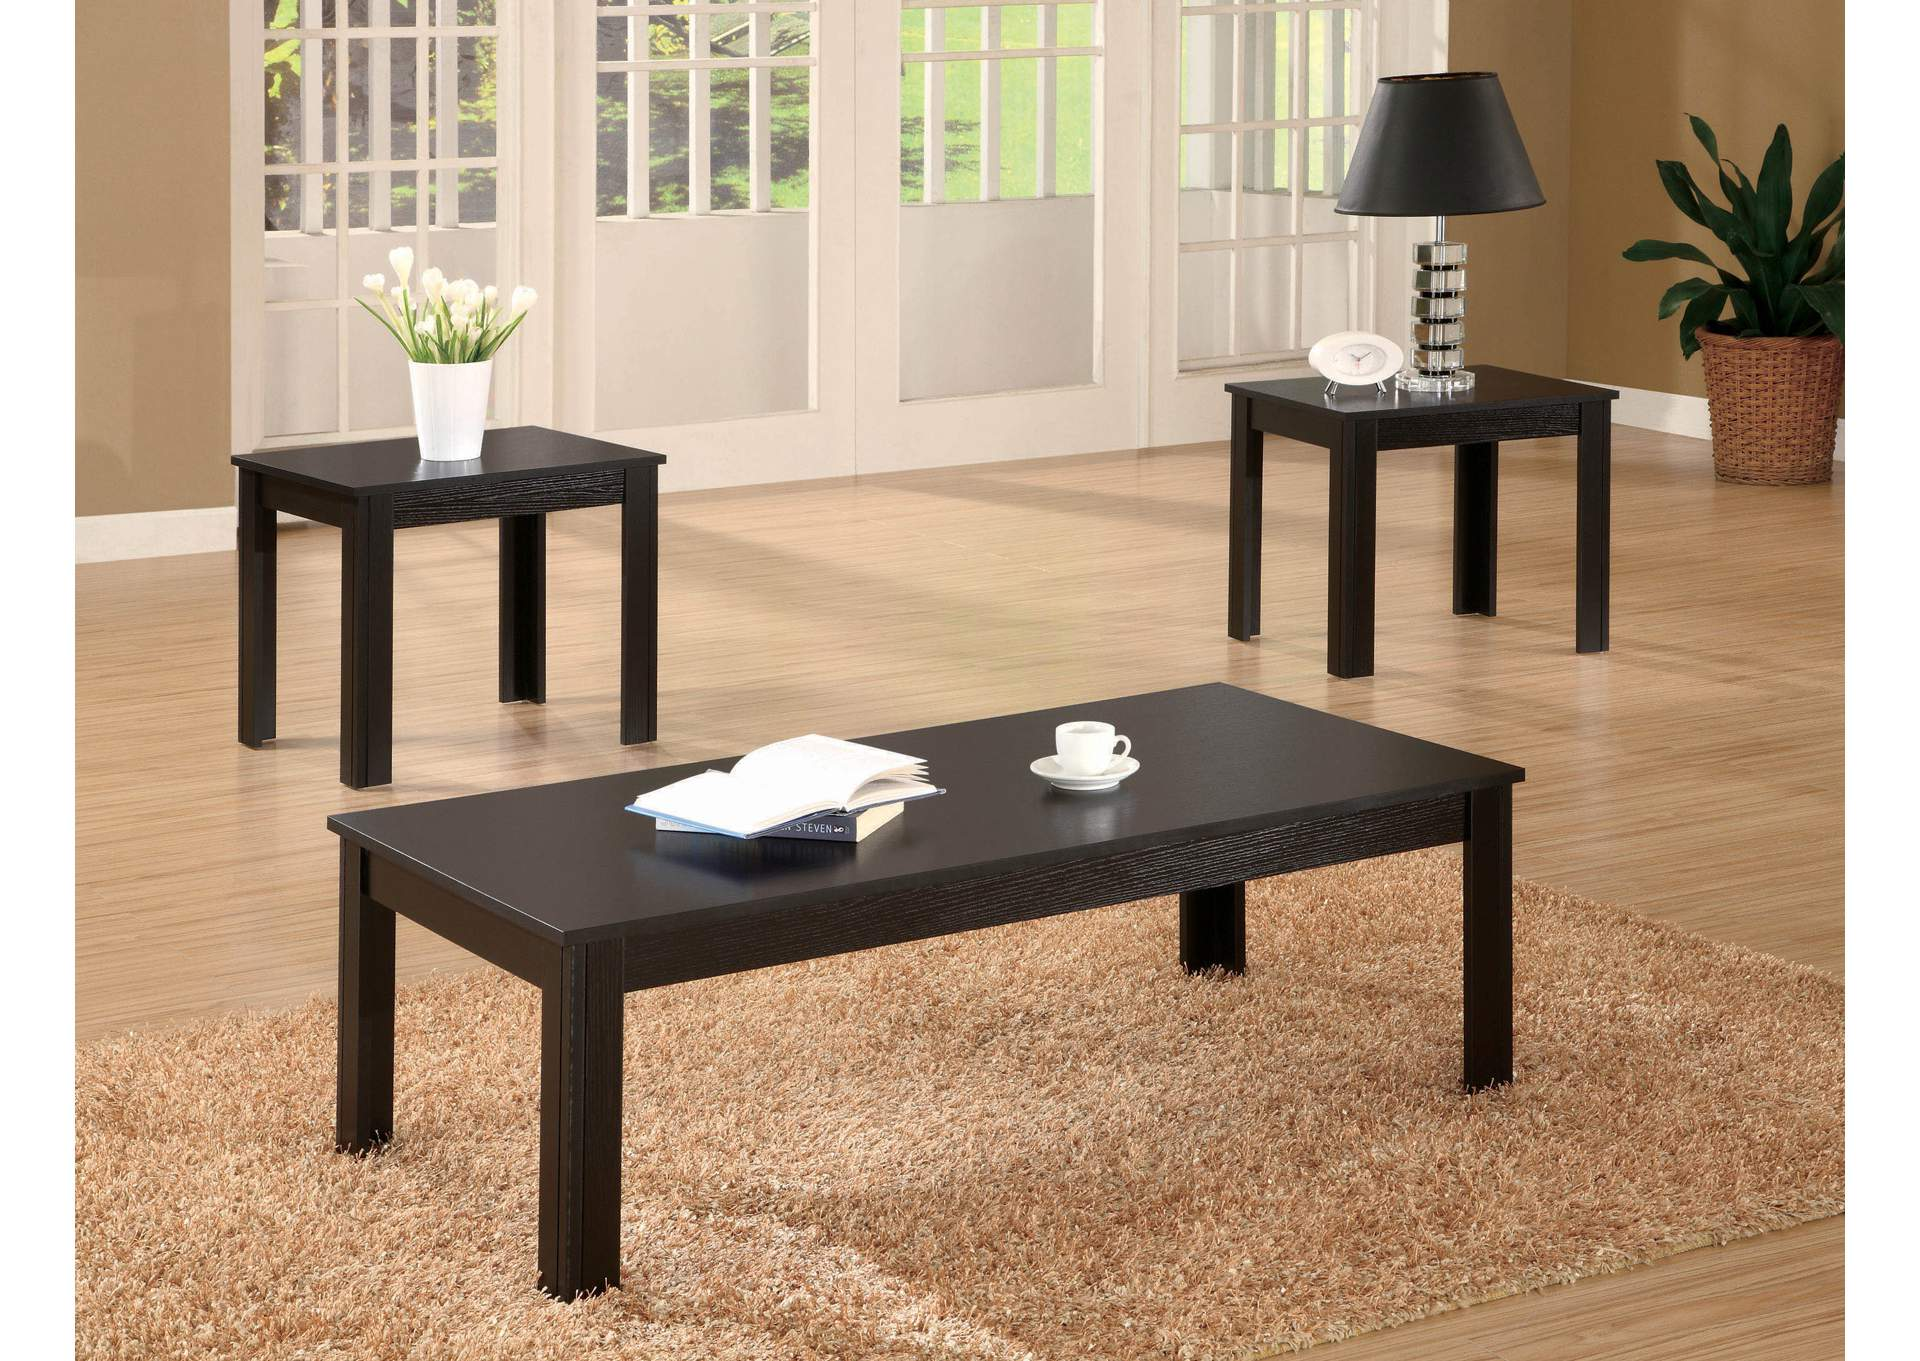 3pc Occasional Group,Coaster Furniture